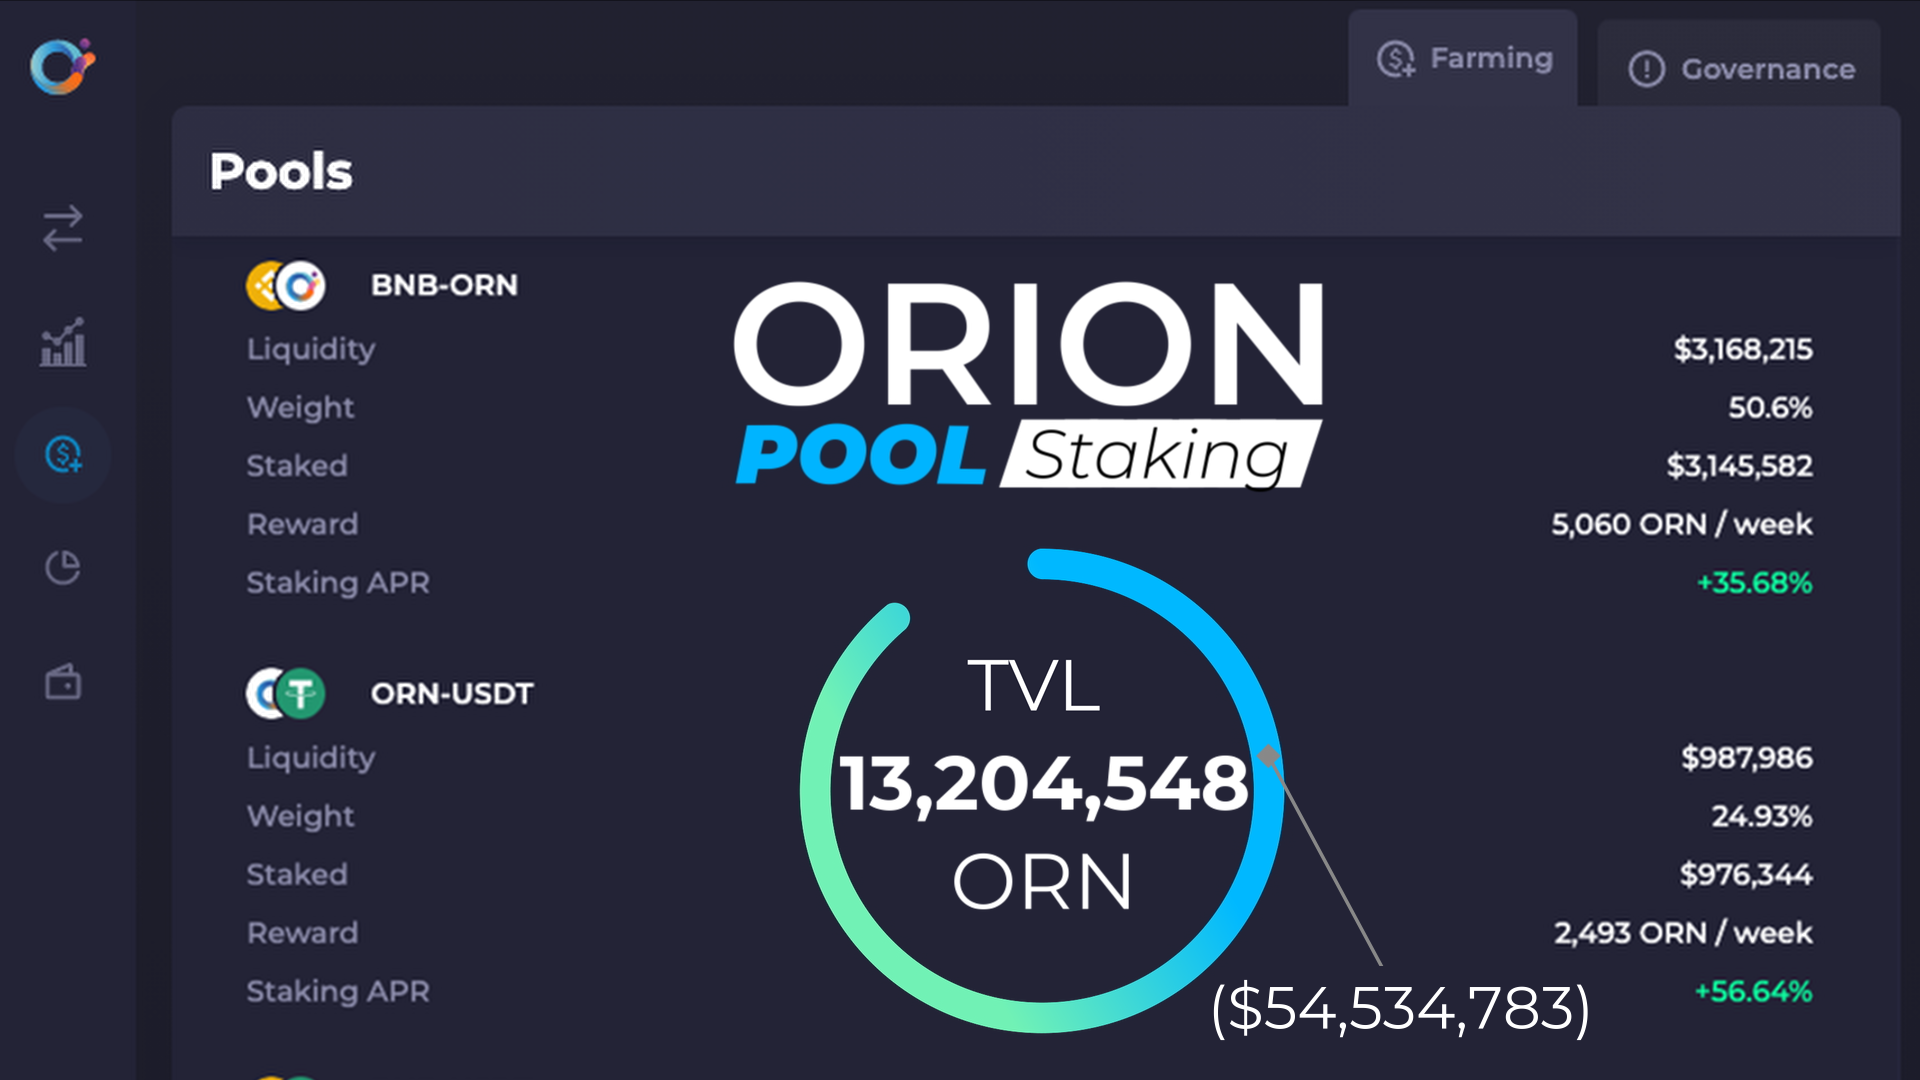 One Month of Orion Pool